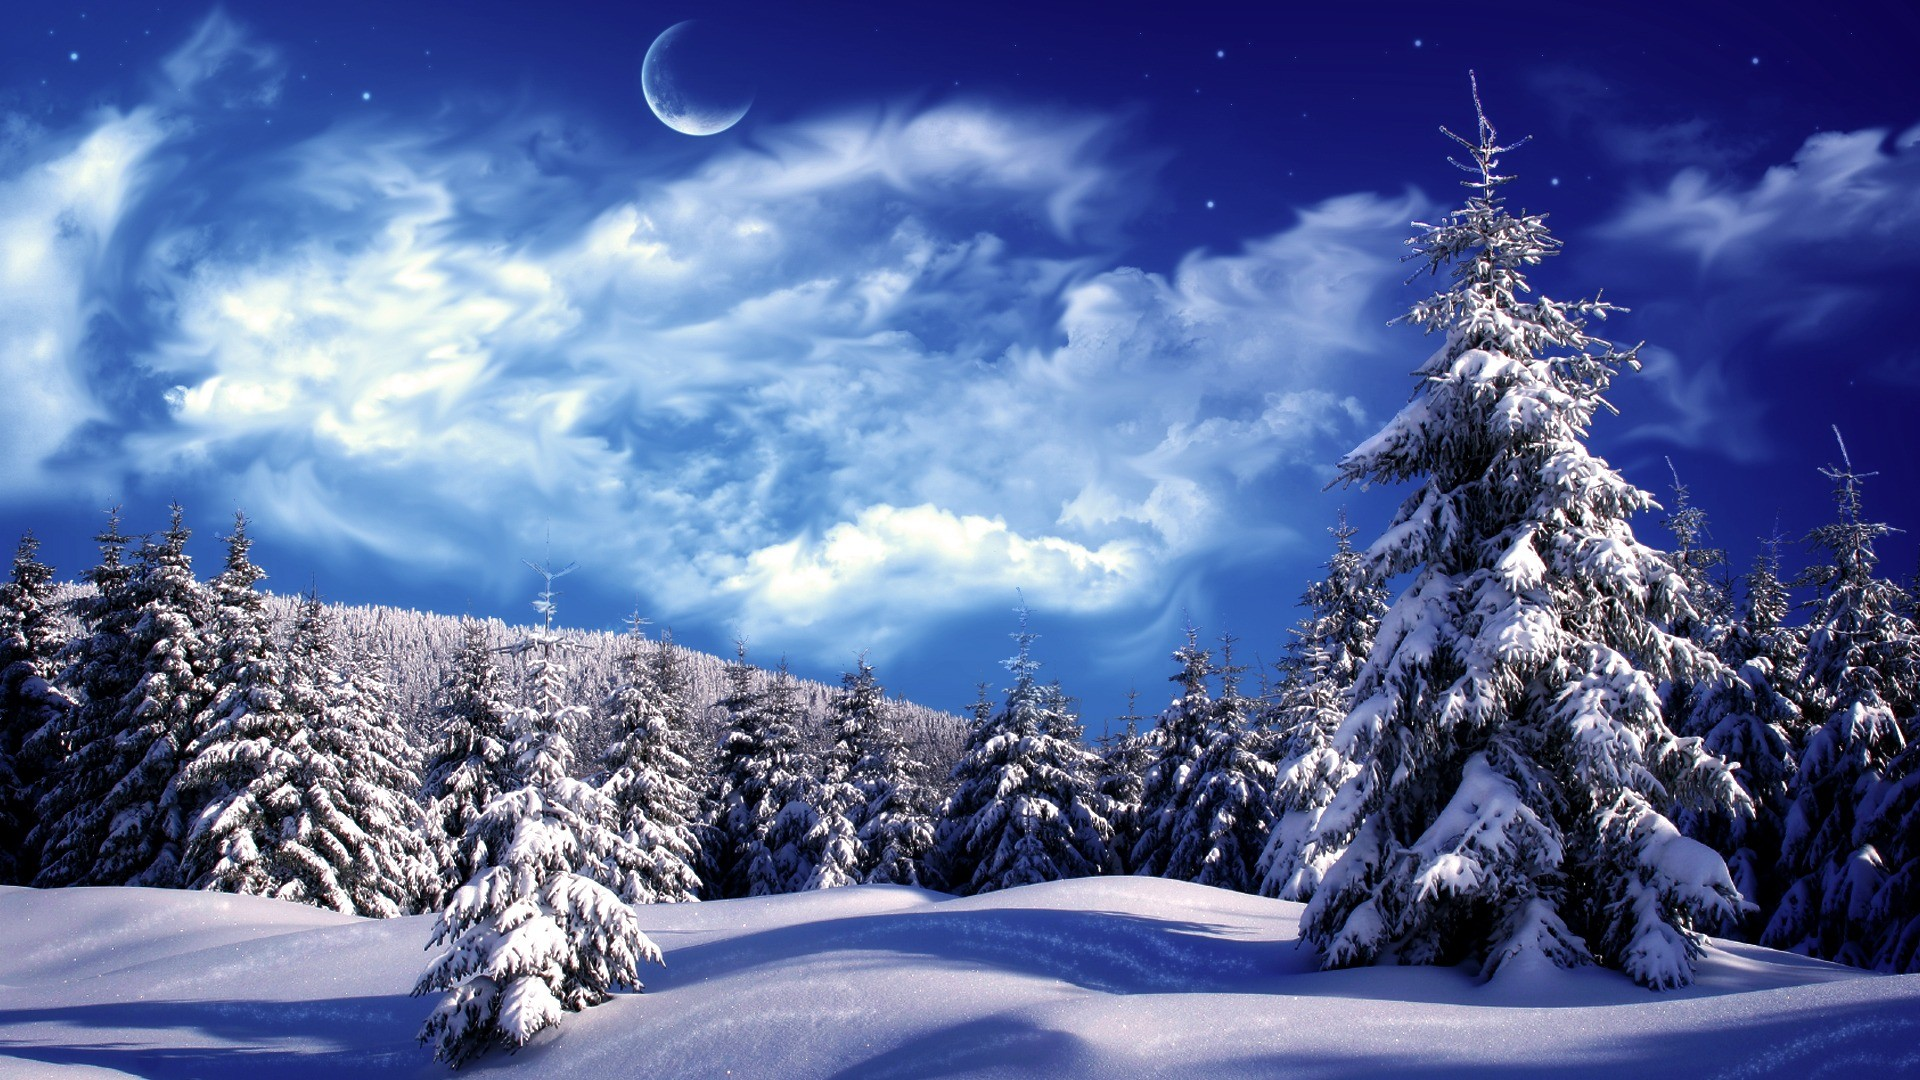 moon wallpaper images for windows | Final Fantasy Zack Fair Download The  Free | MOON (3) | Pinterest | Purple sky and Beautiful places